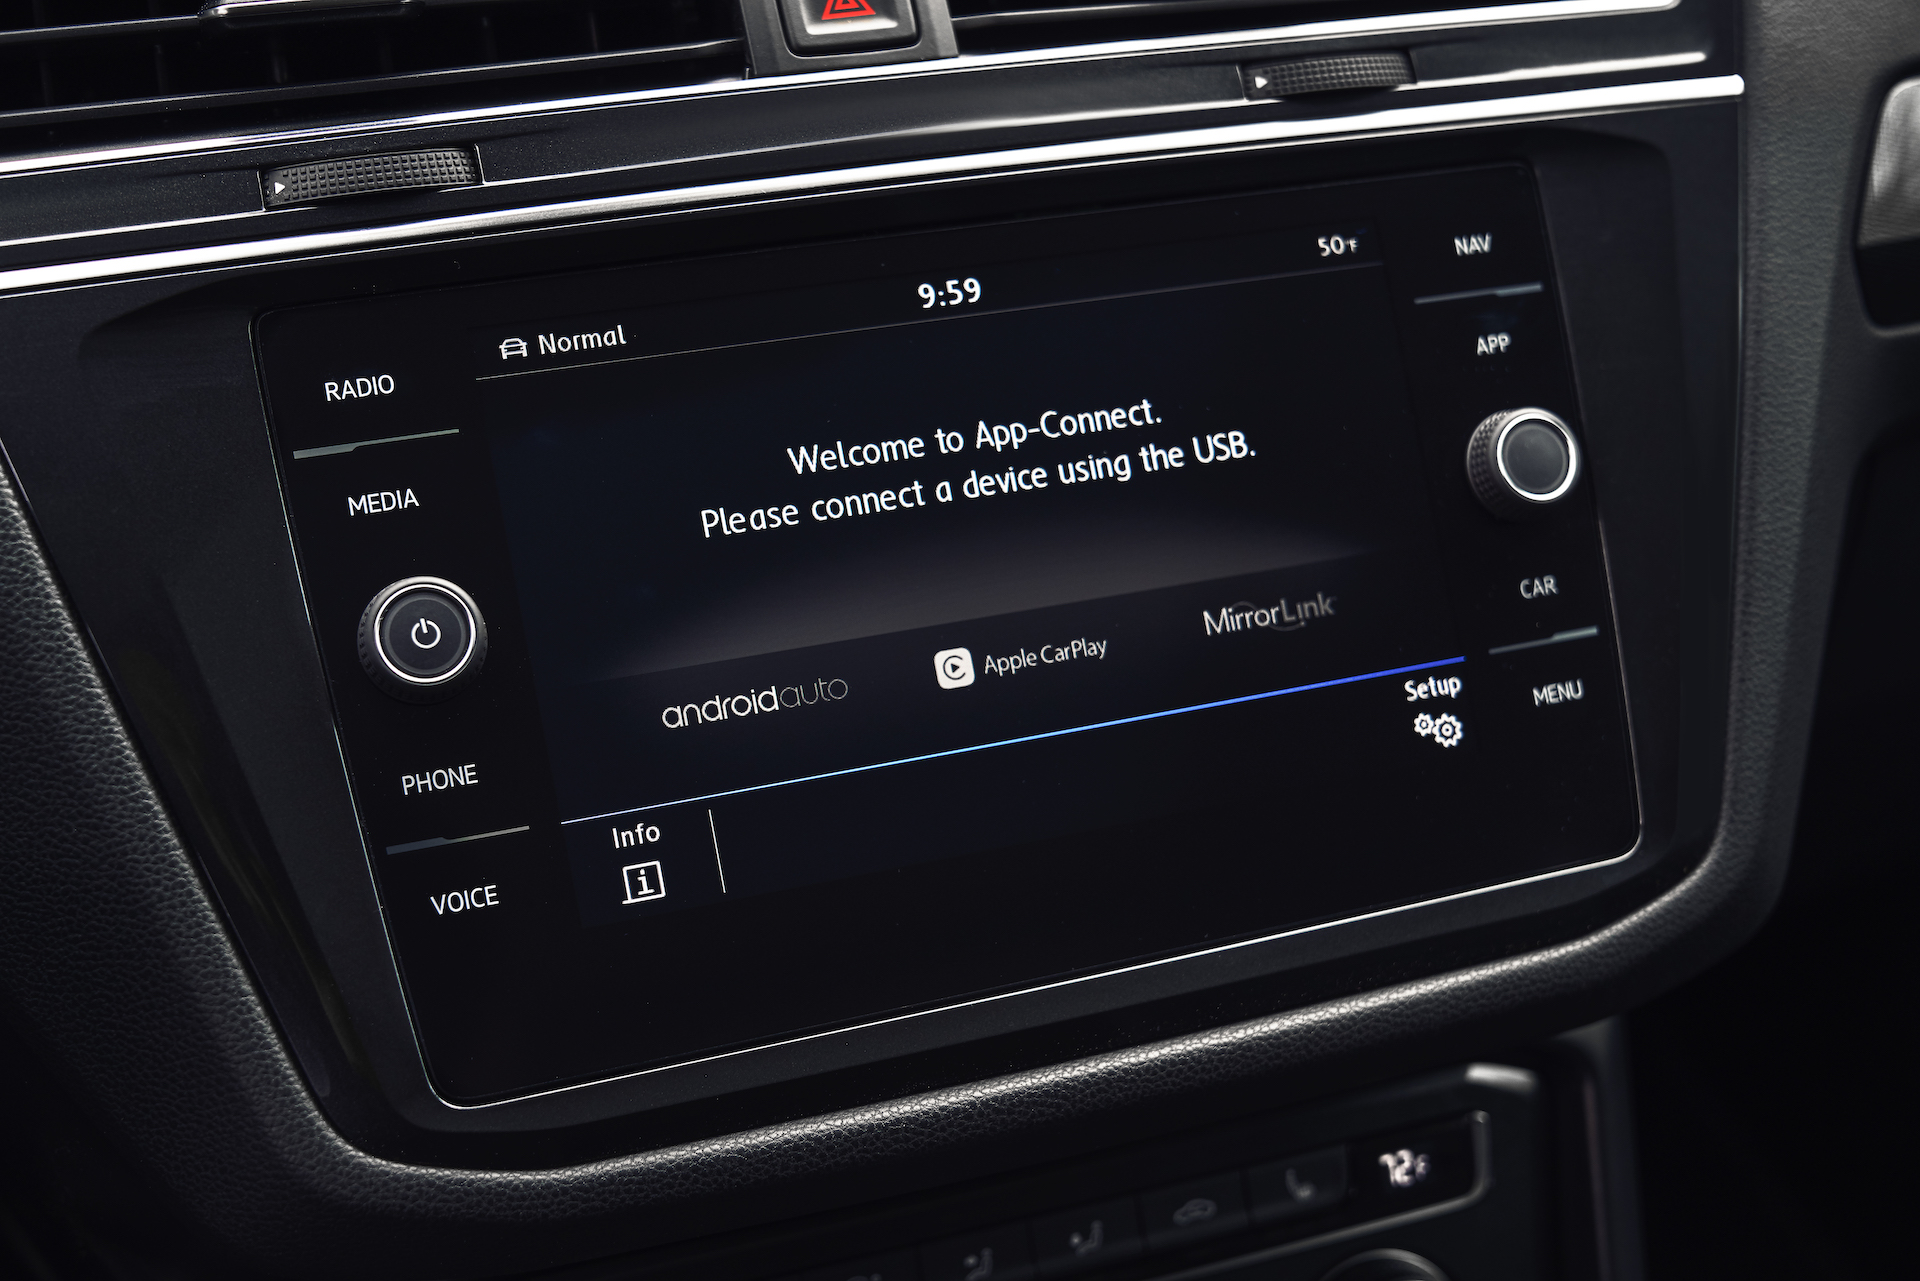 VW owners can now unlock their car with Apple's Siri